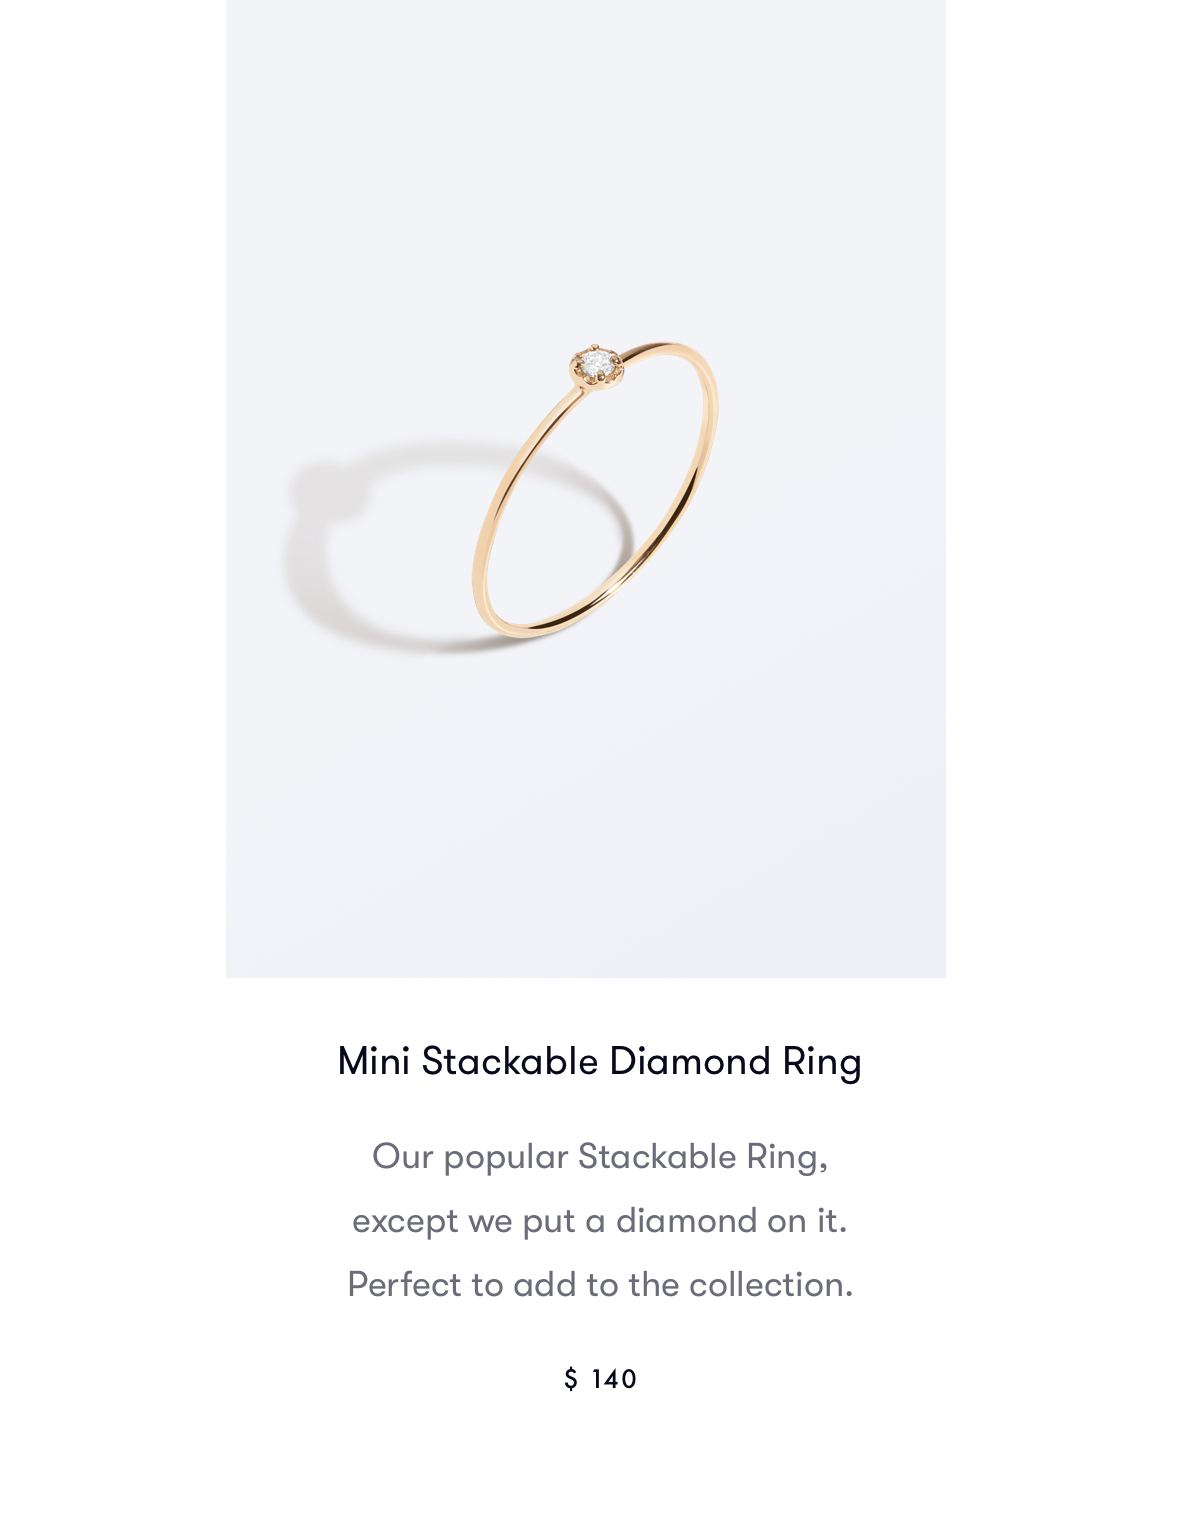 Mini Stackable Diamond Ring